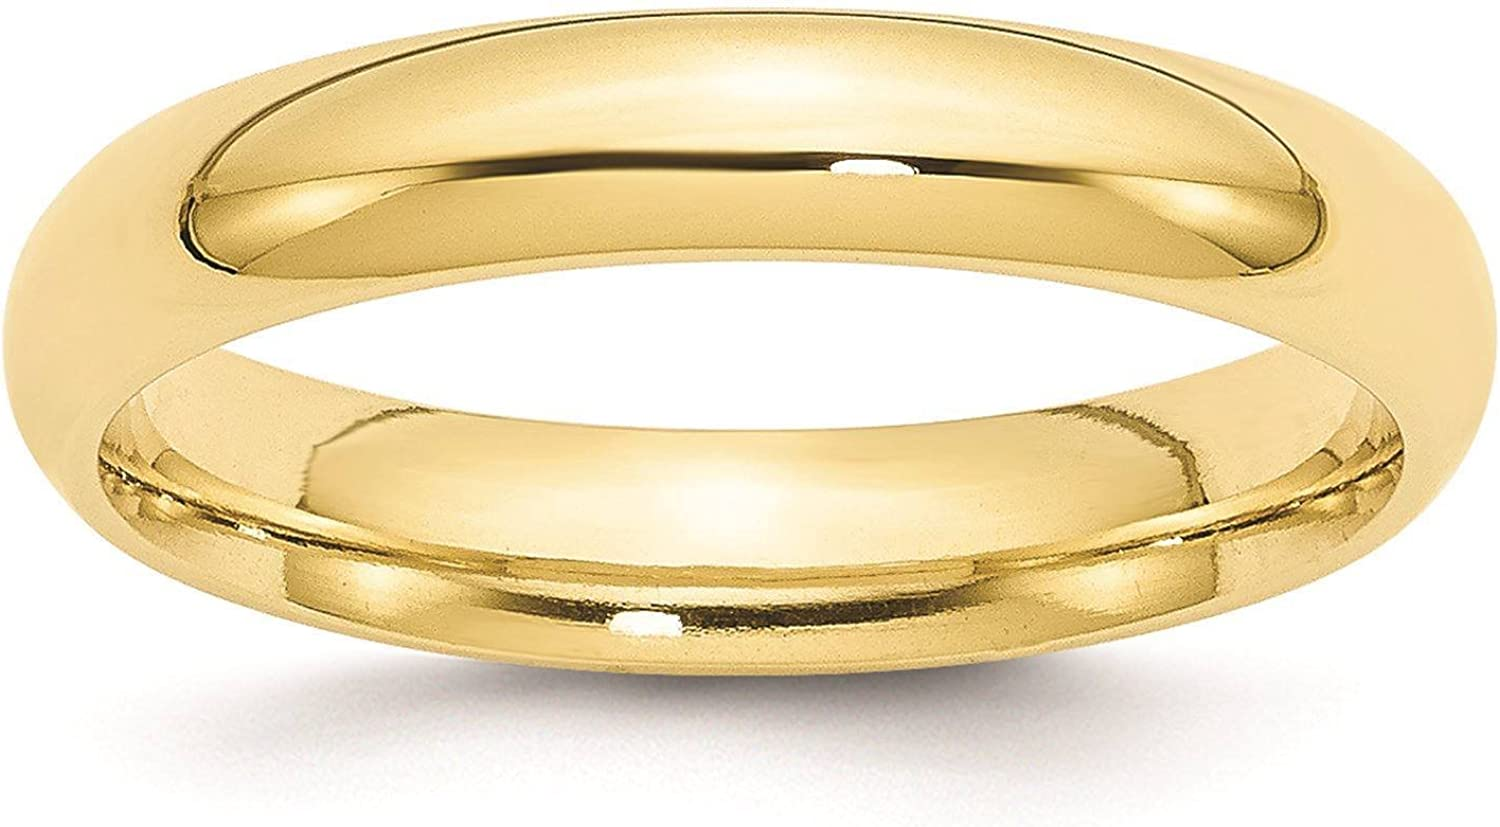 Full /& Half Sizes 10k Yellow Gold 4mm Standard Comfort Fit Wedding Ring Band Size 4-14